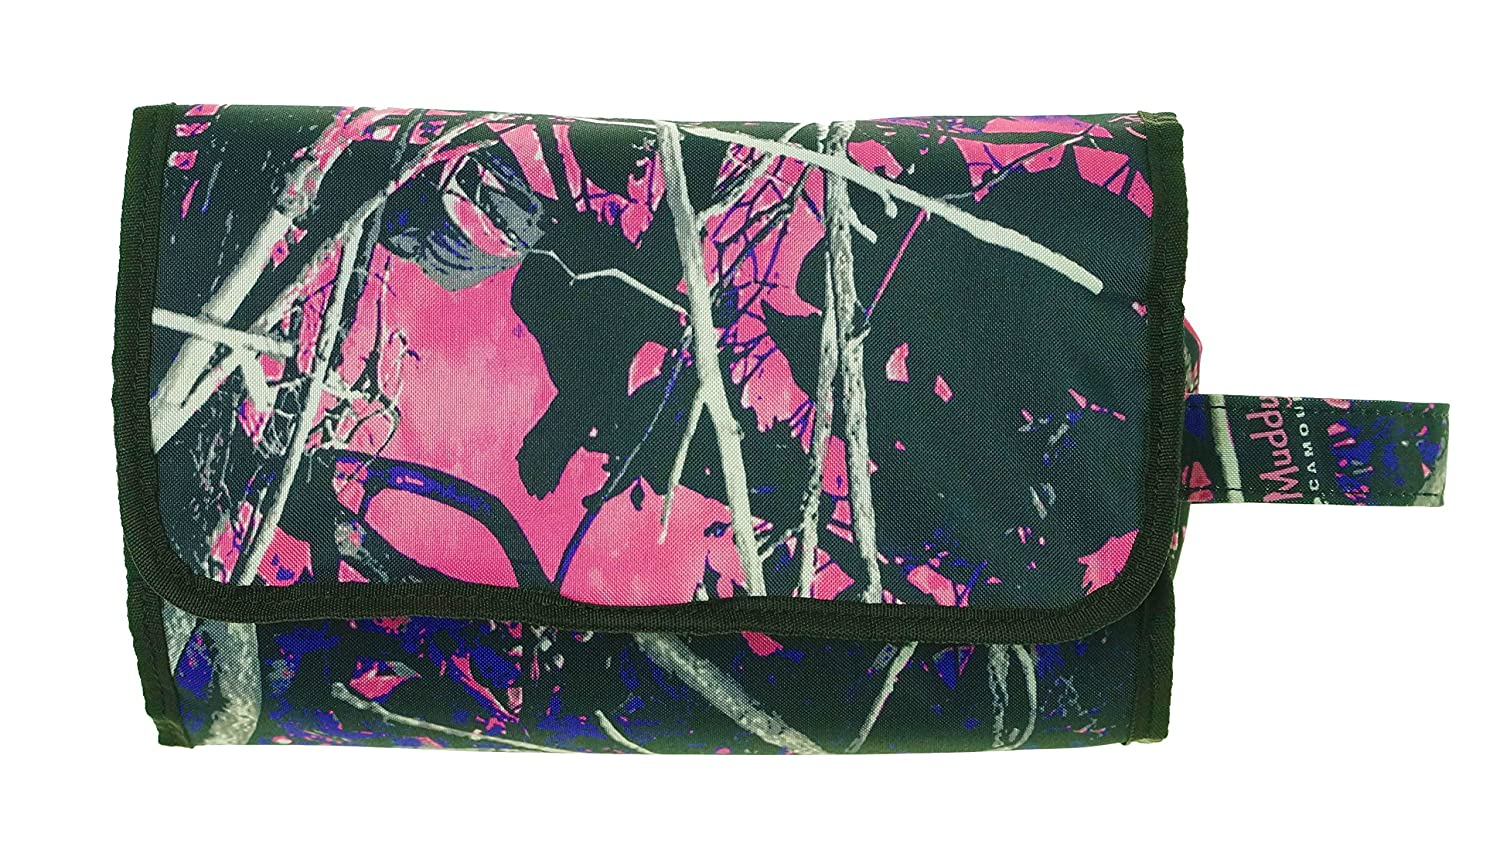 Muddy Girl Purple Pink Roll Up Cosmetic Bag